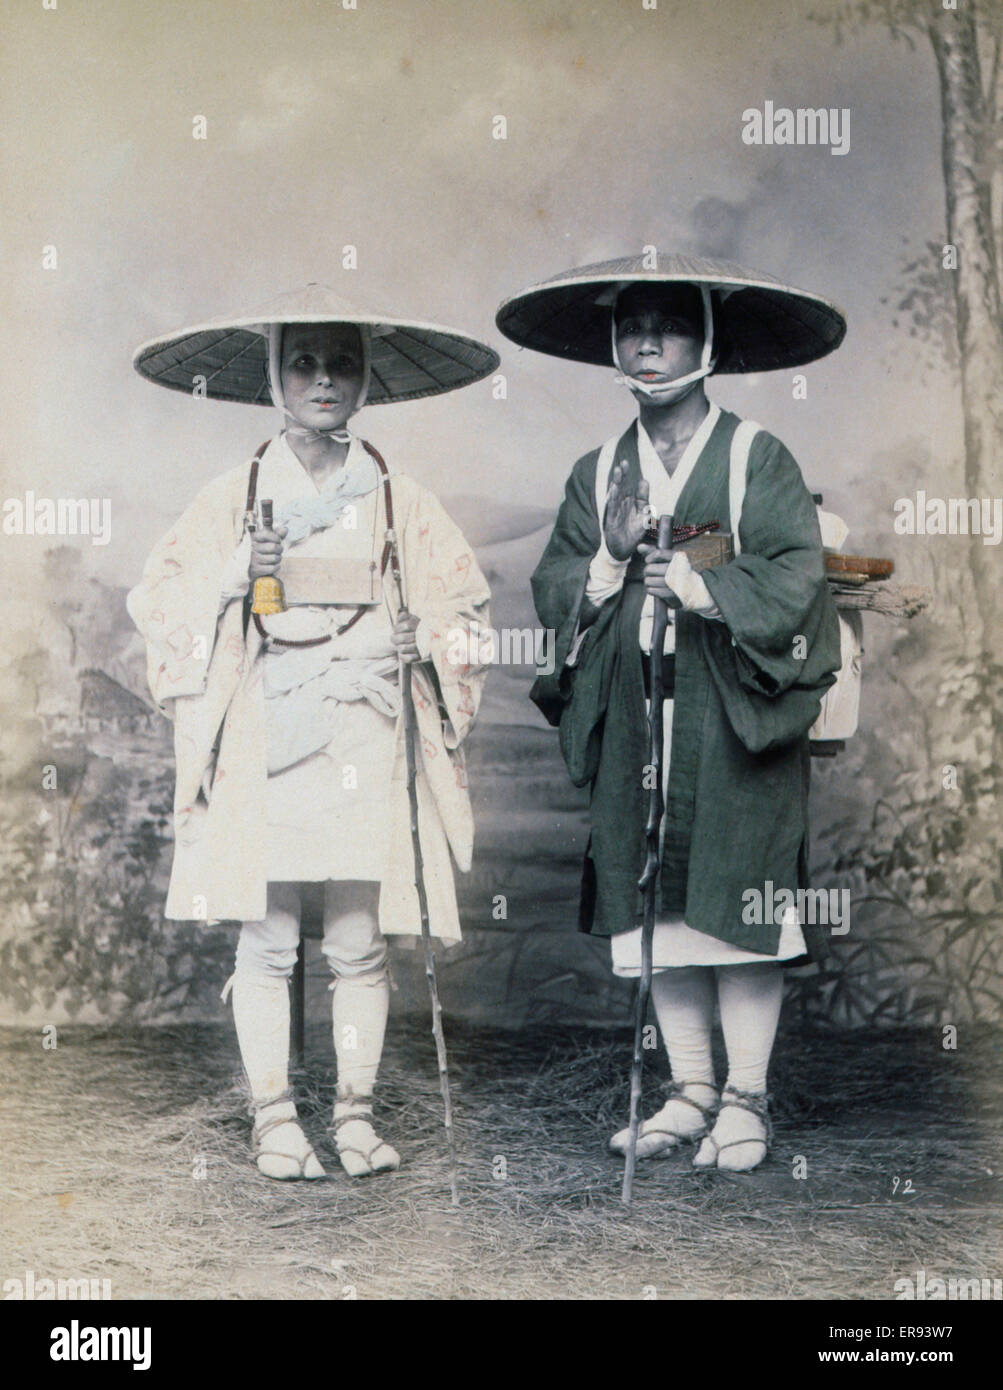 Two travelers with staffs, wearing hats, studio portrait. Photograph shows a studio portrait of two travelers, possibly - Stock Image